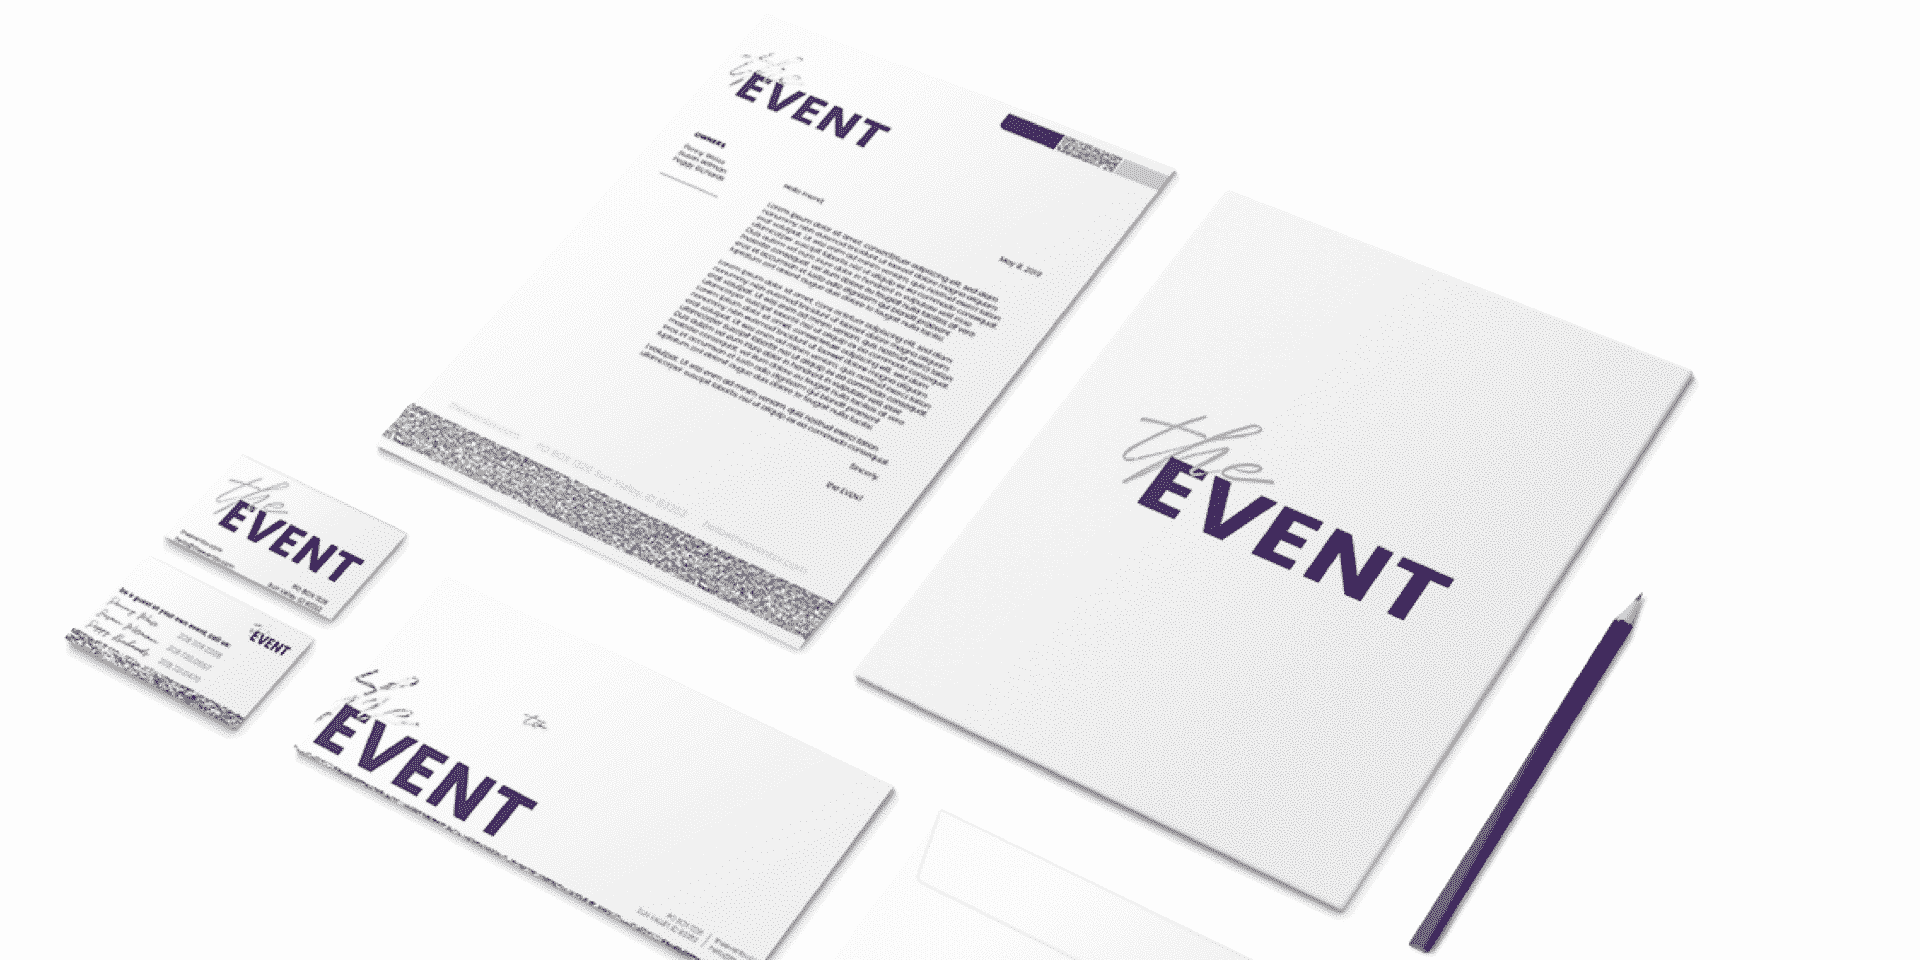 Portfolio | Stationary Design for the EVENT including letterhead, notecards, folder and envelope